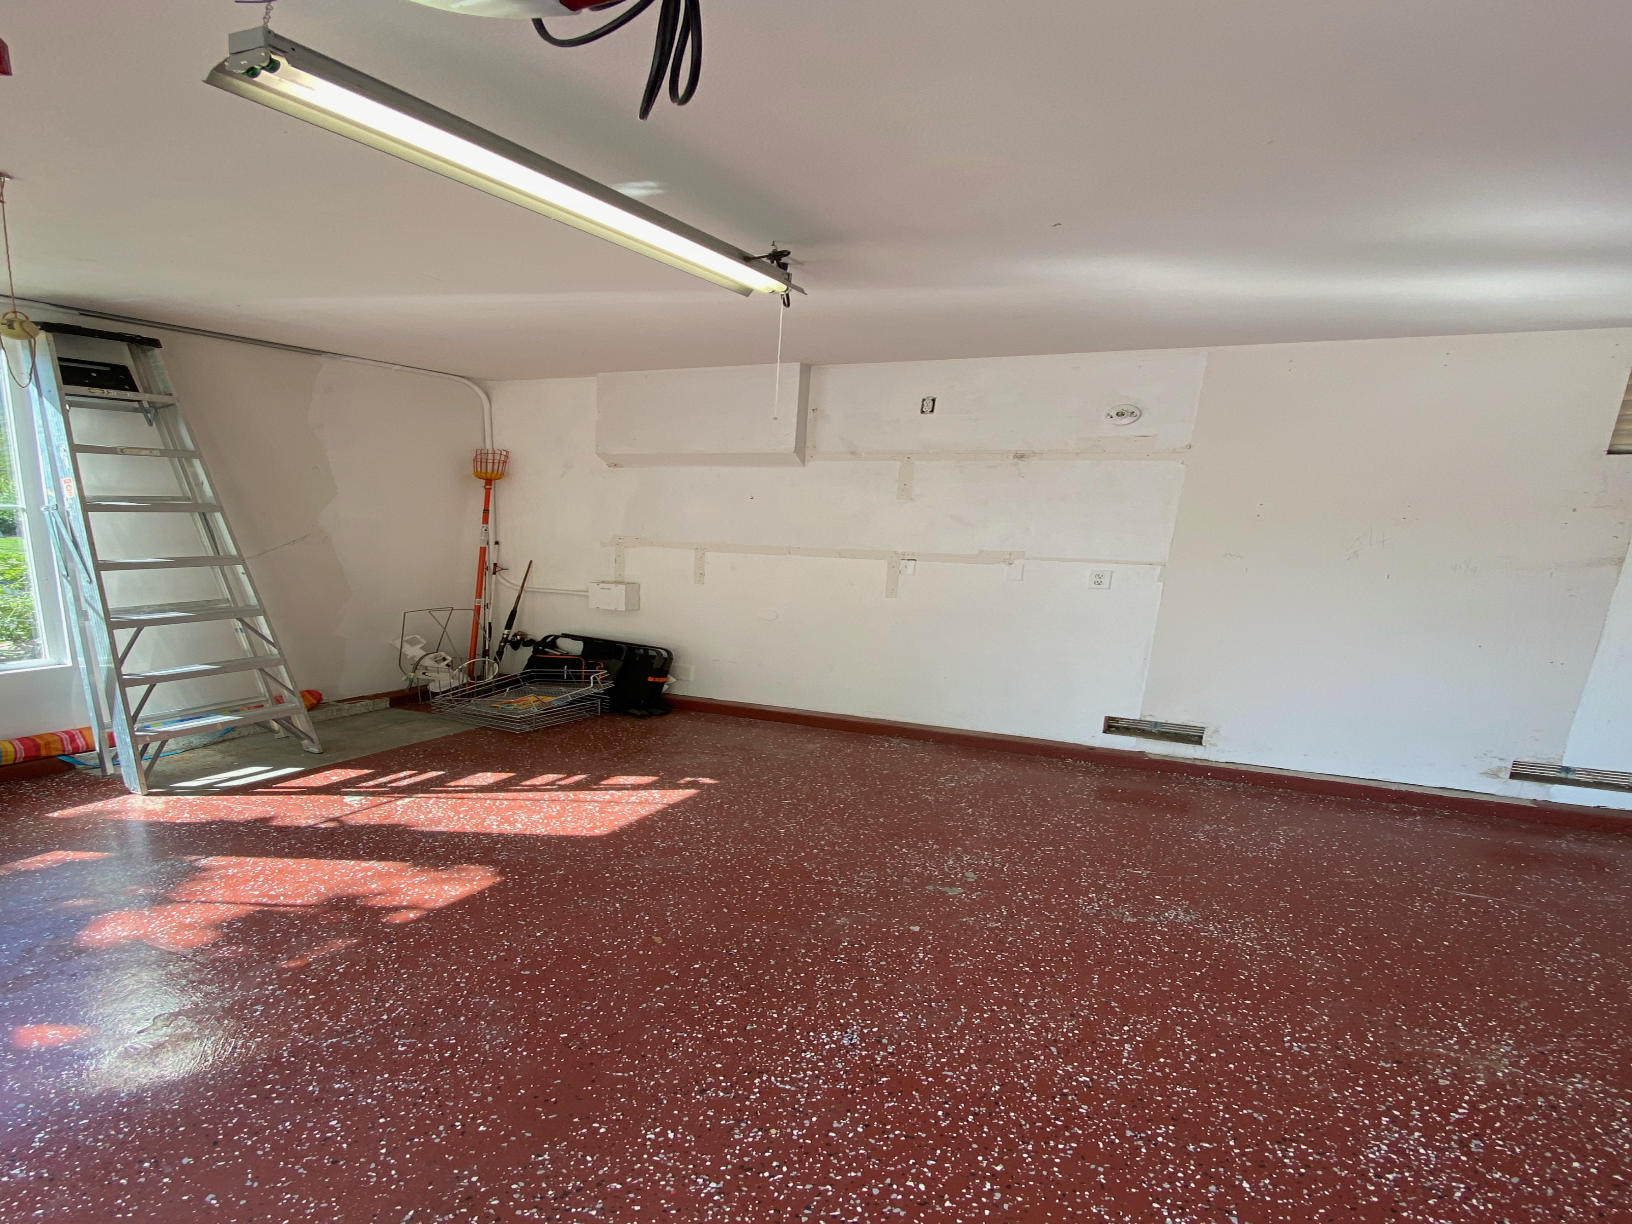 Garage Storage Unit Removal in Trabuco Canyon, CA - After Photo